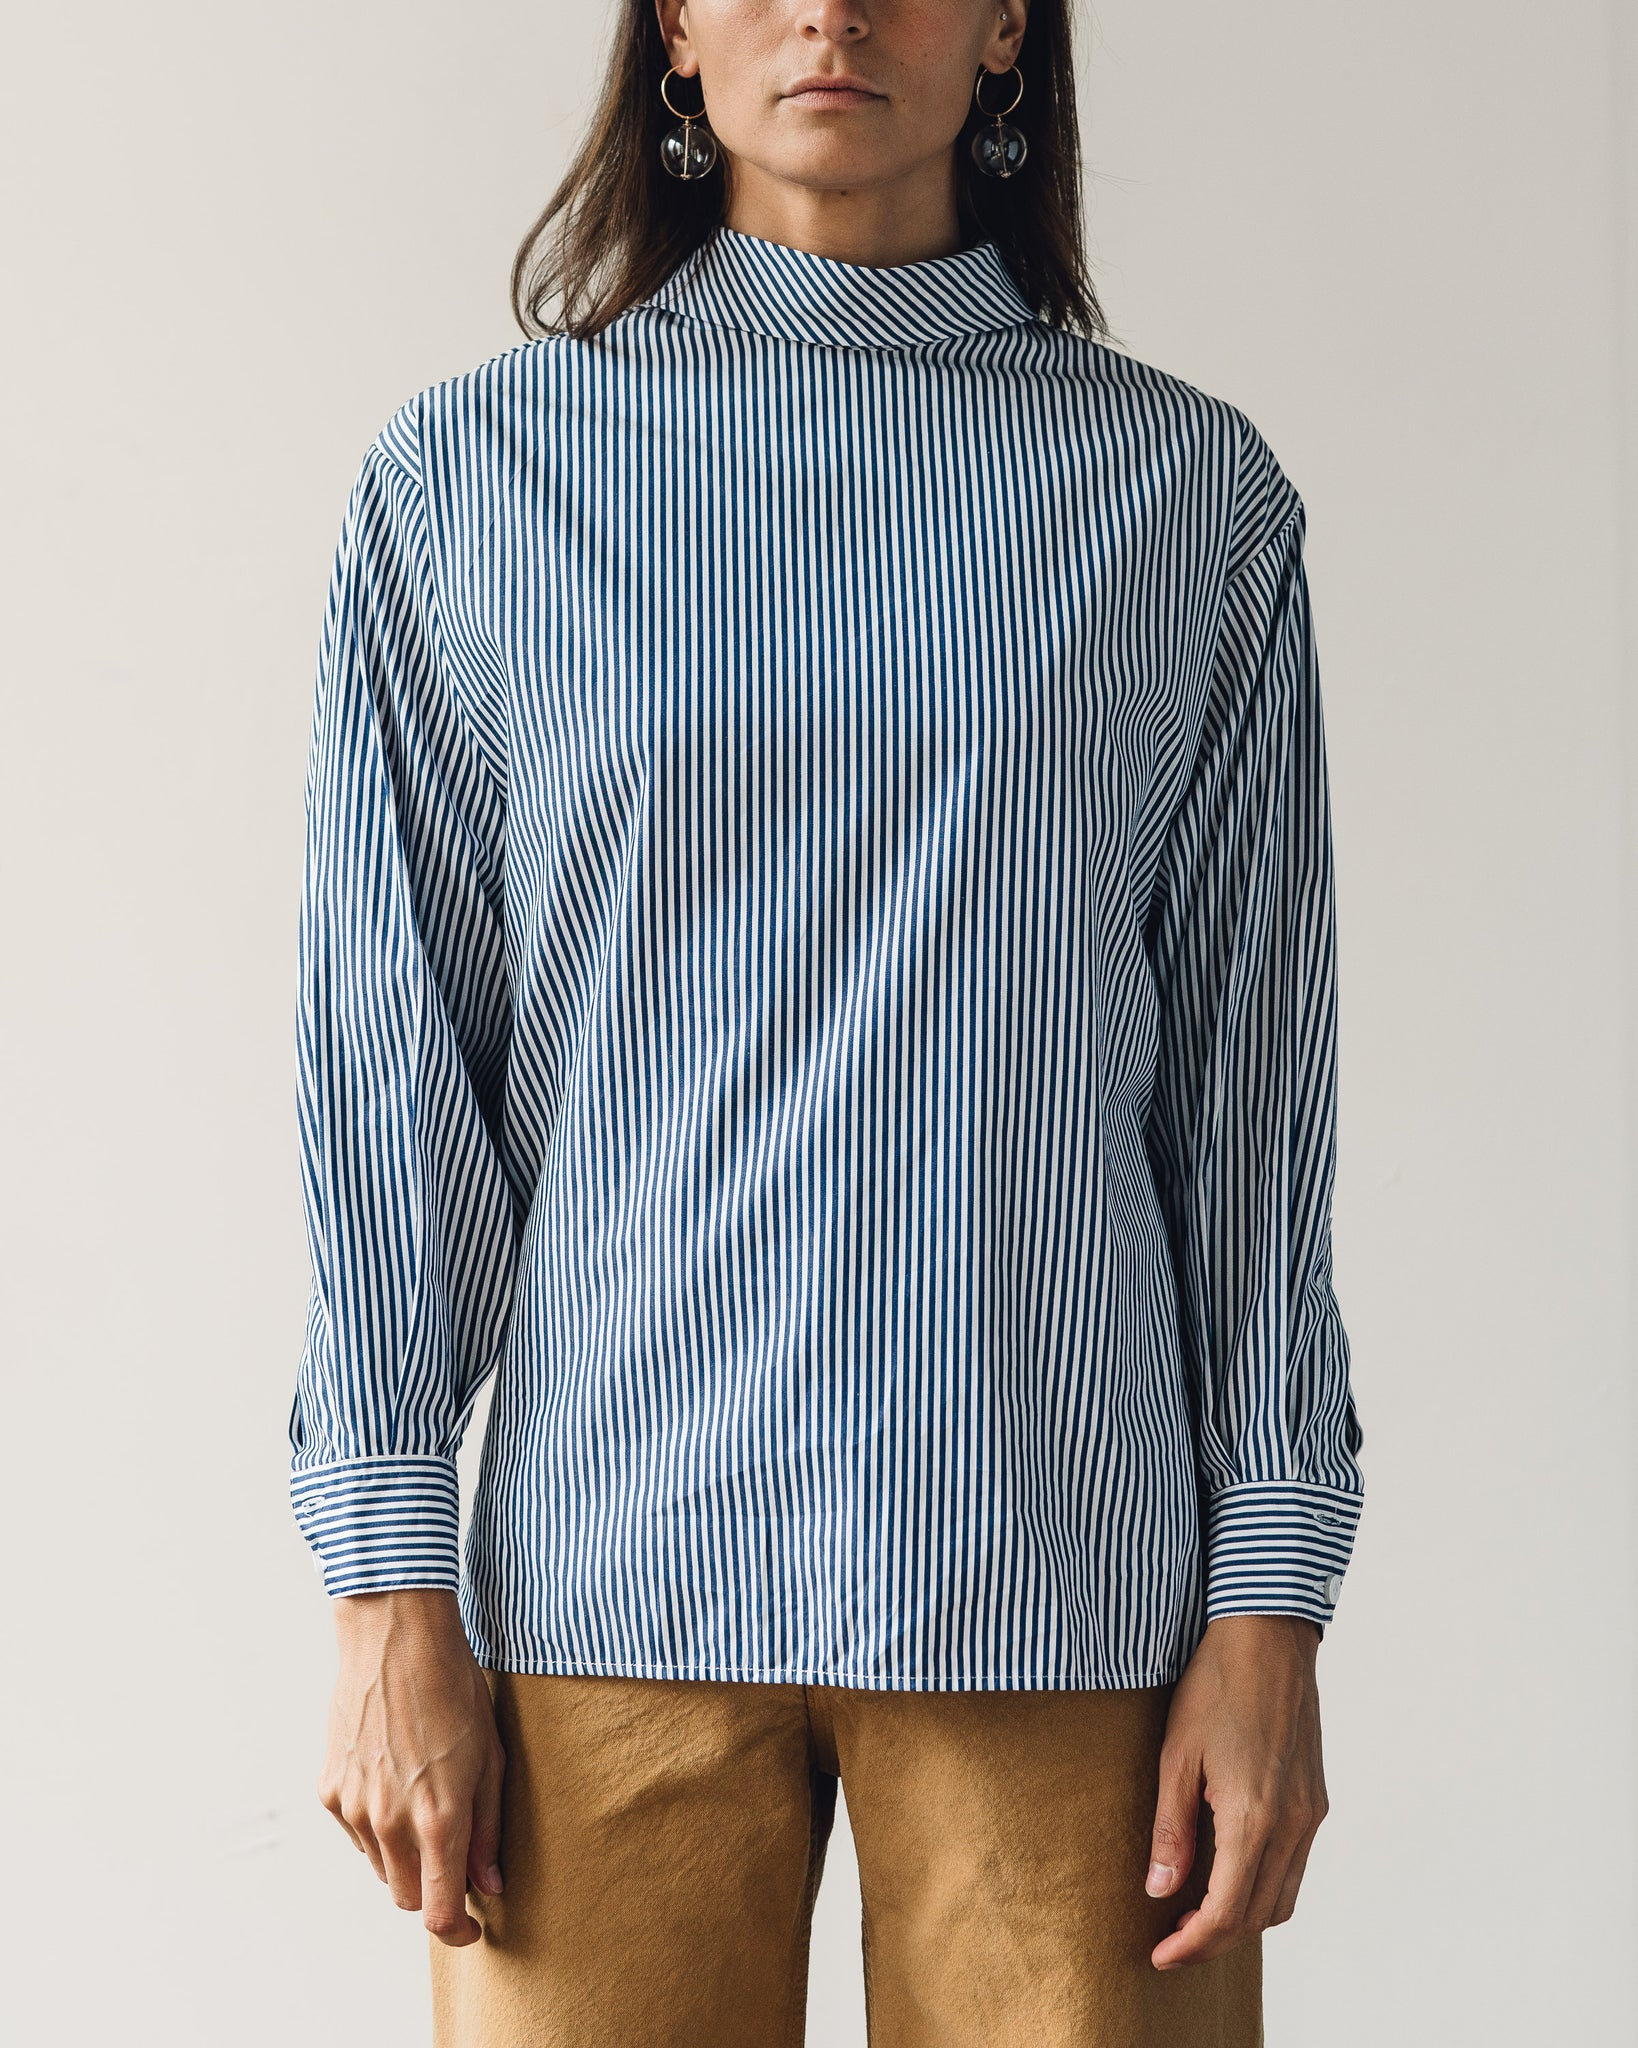 Jesse Kamm Box Turtleneck